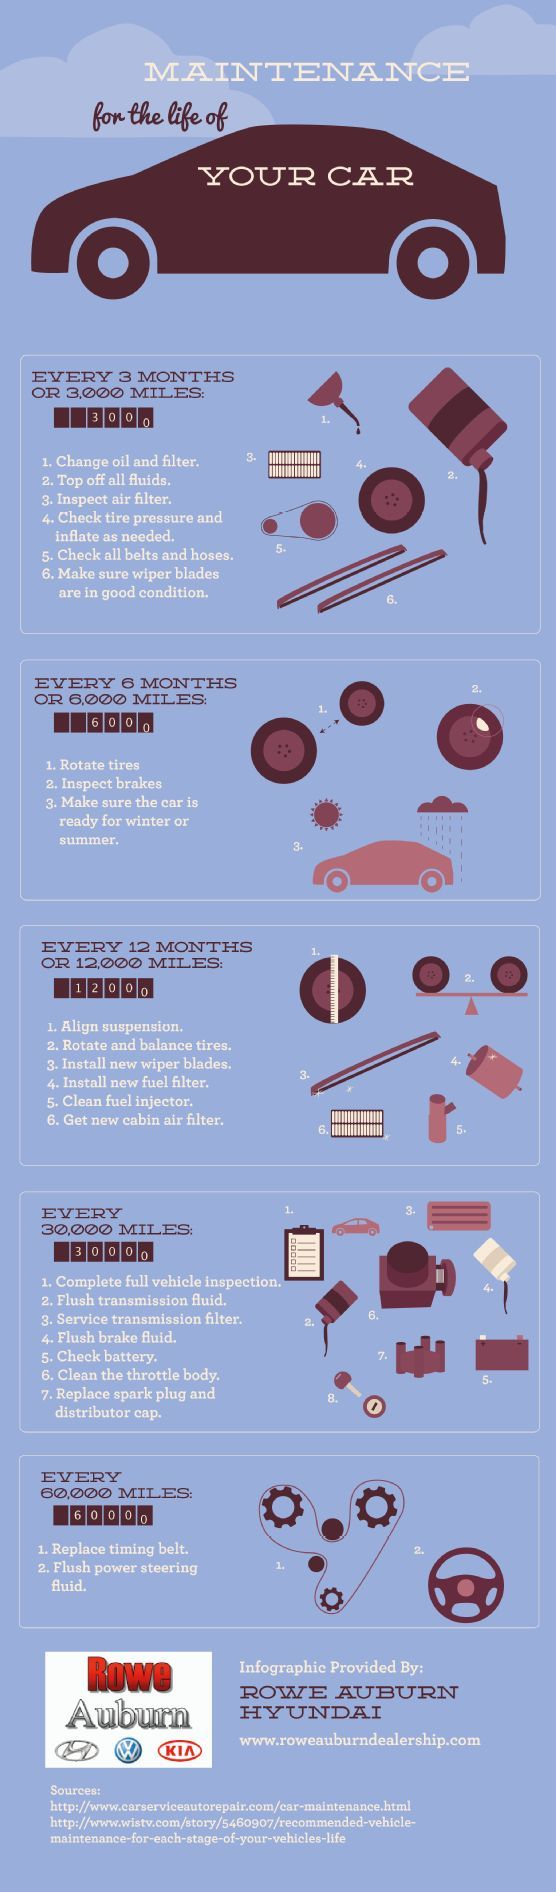 127 Best Car Stuff Images On Pinterest Apocalypse Cars And Hacks Wj Led Light Bar Wiring Help Confused Jeepforumcom 5 Tips For Your First Diy Repair